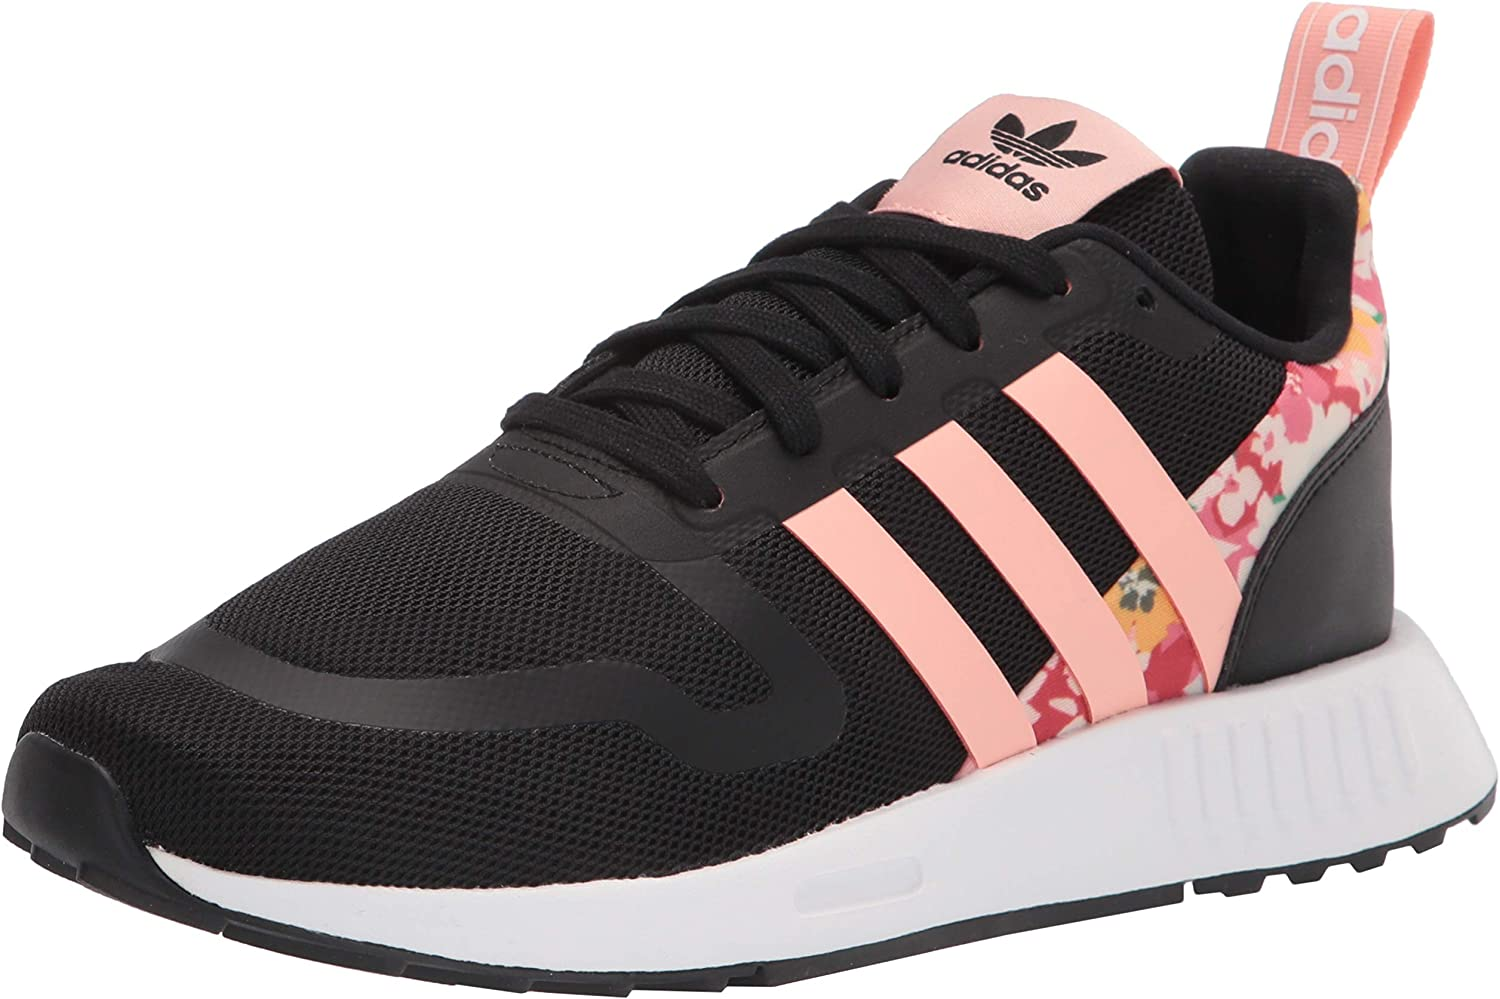 adidas Originals Cheap mail order specialty store Unisex-Child New life Smooth Sneaker Runner